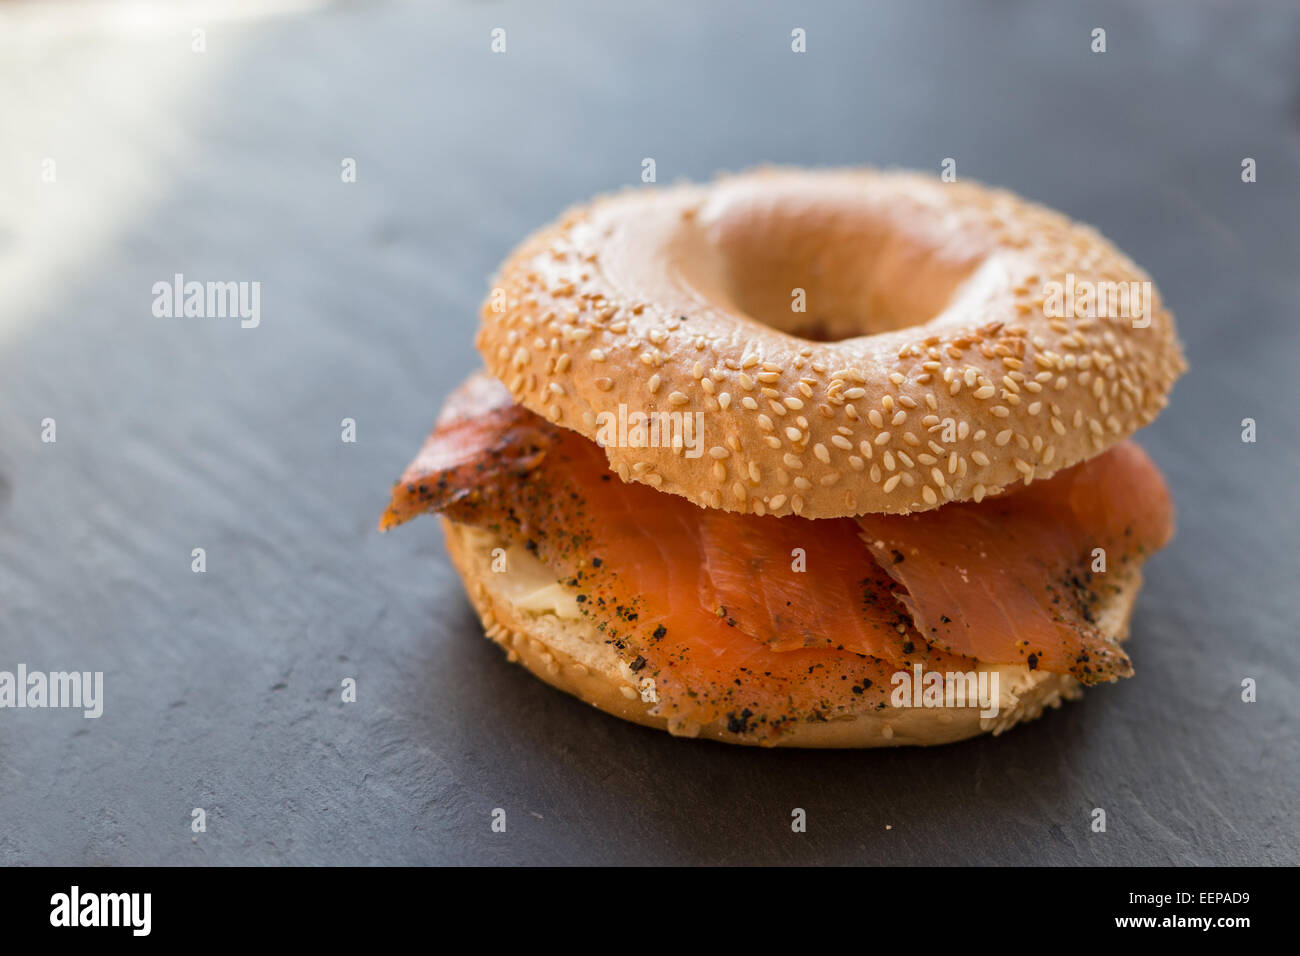 Peppered Salmon with a Sesame Bagel - Stock Image